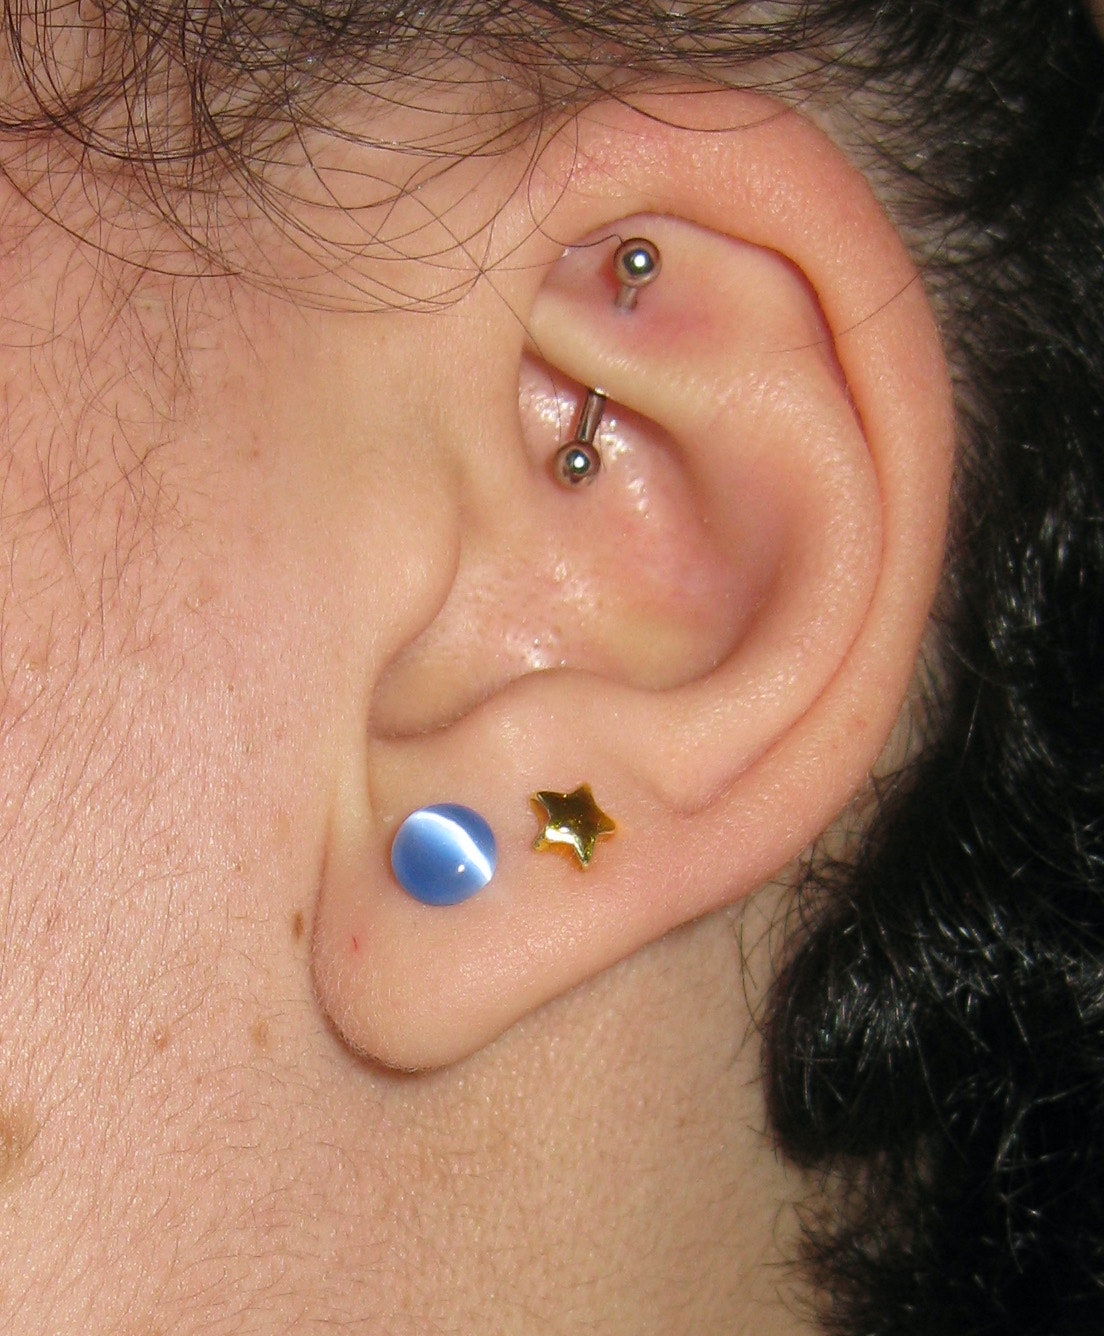 7 Things That Could Happen To Your Body When You Get Your Ears Pierced